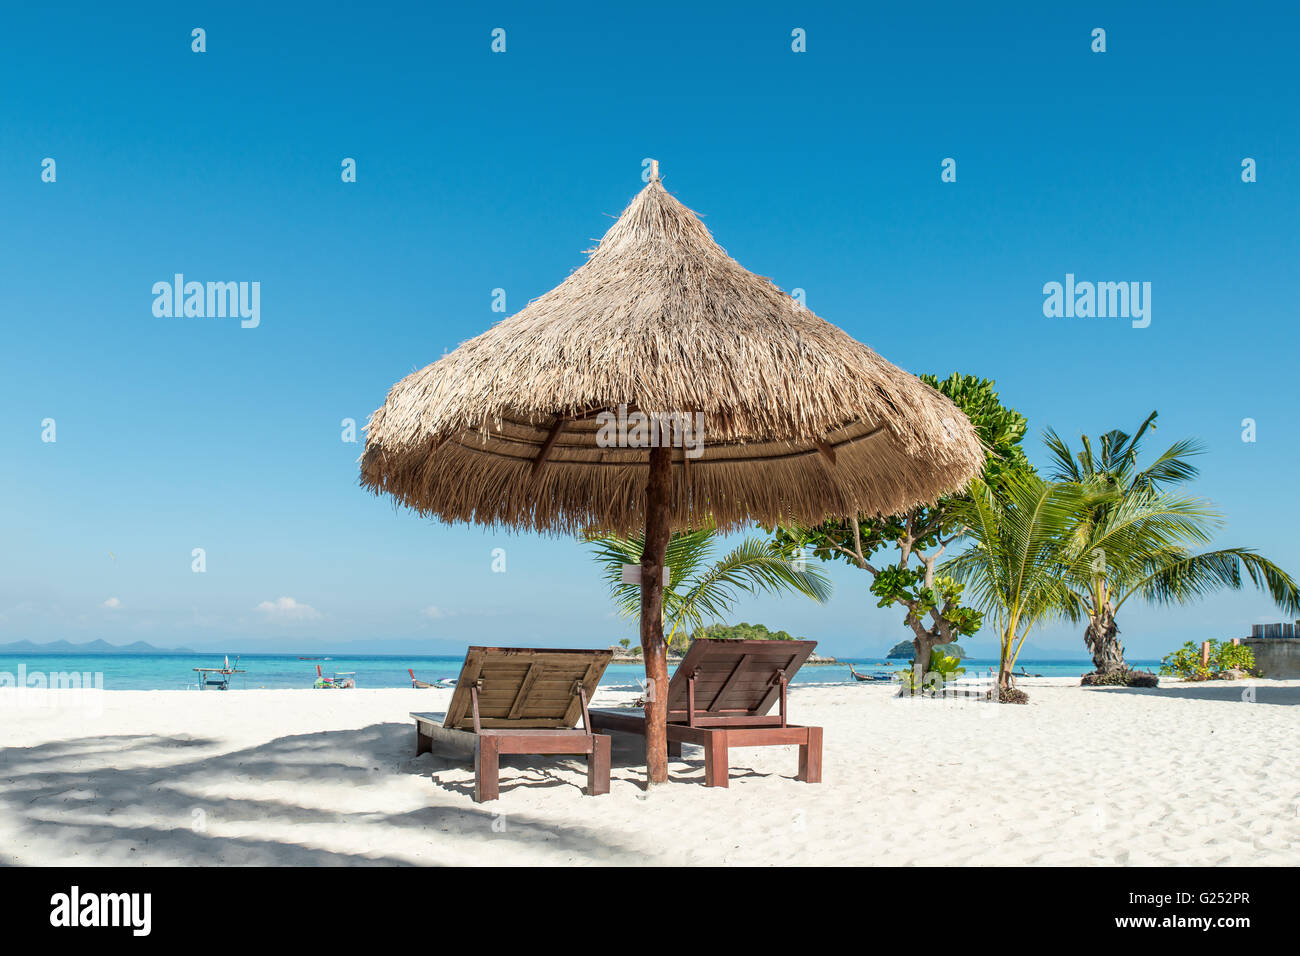 Summer, Travel, Vacation and Holiday concept - Beach Chairs and Umbrella on island in Phuket, Thailand - Stock Image